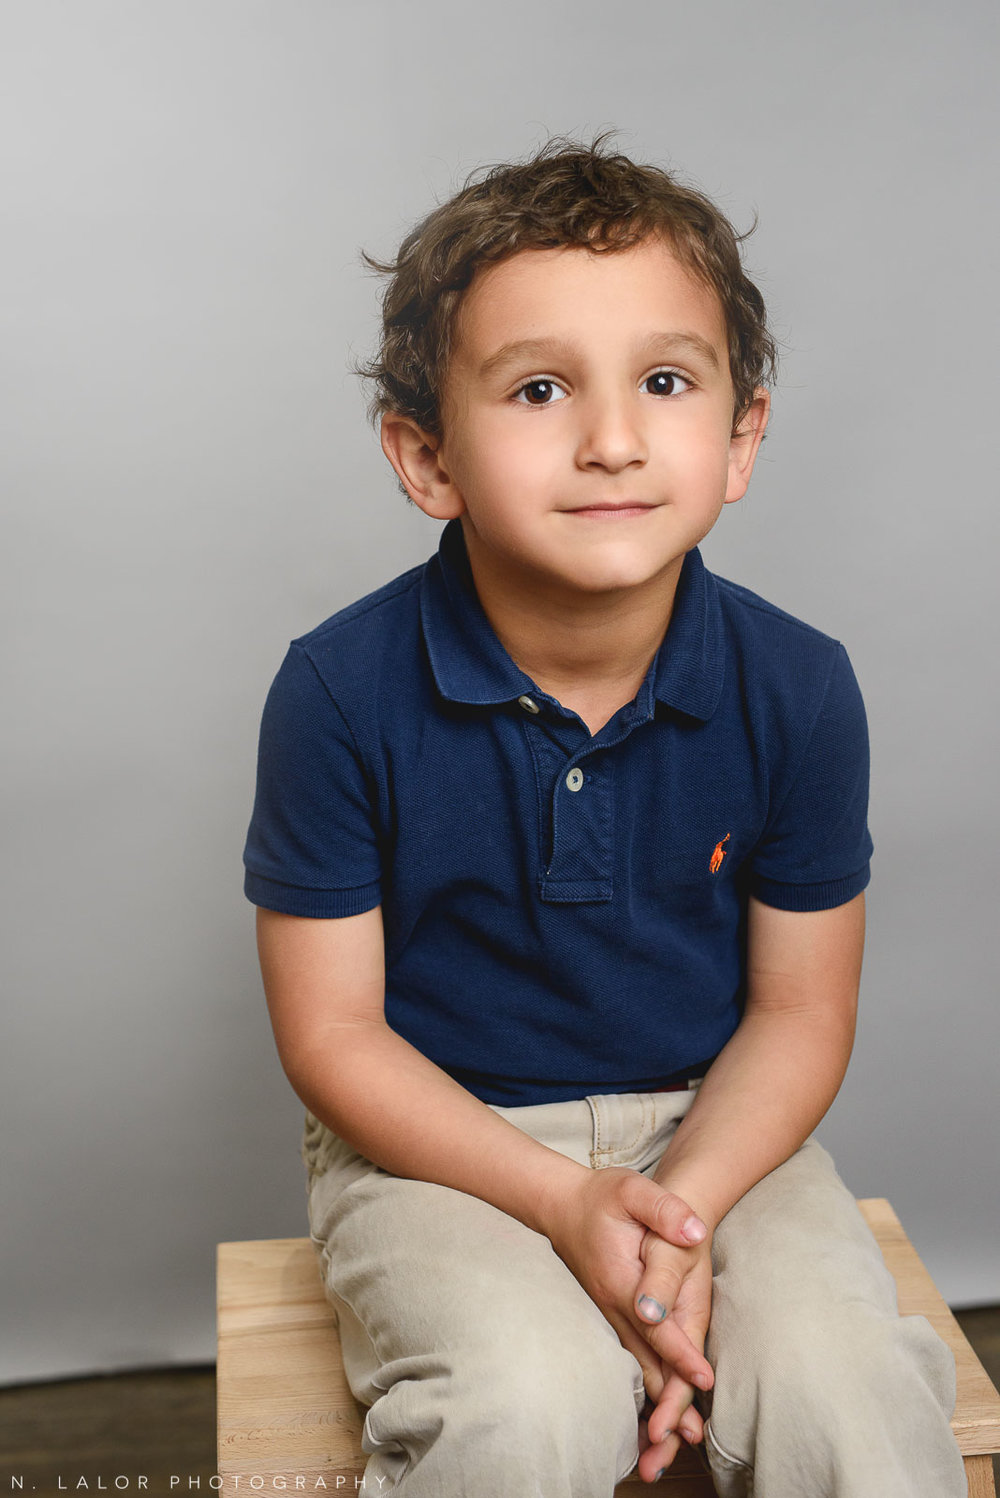 Active little boy. Simple studio portrait by N. Lalor Photography. Taken in New Canaan, CT.